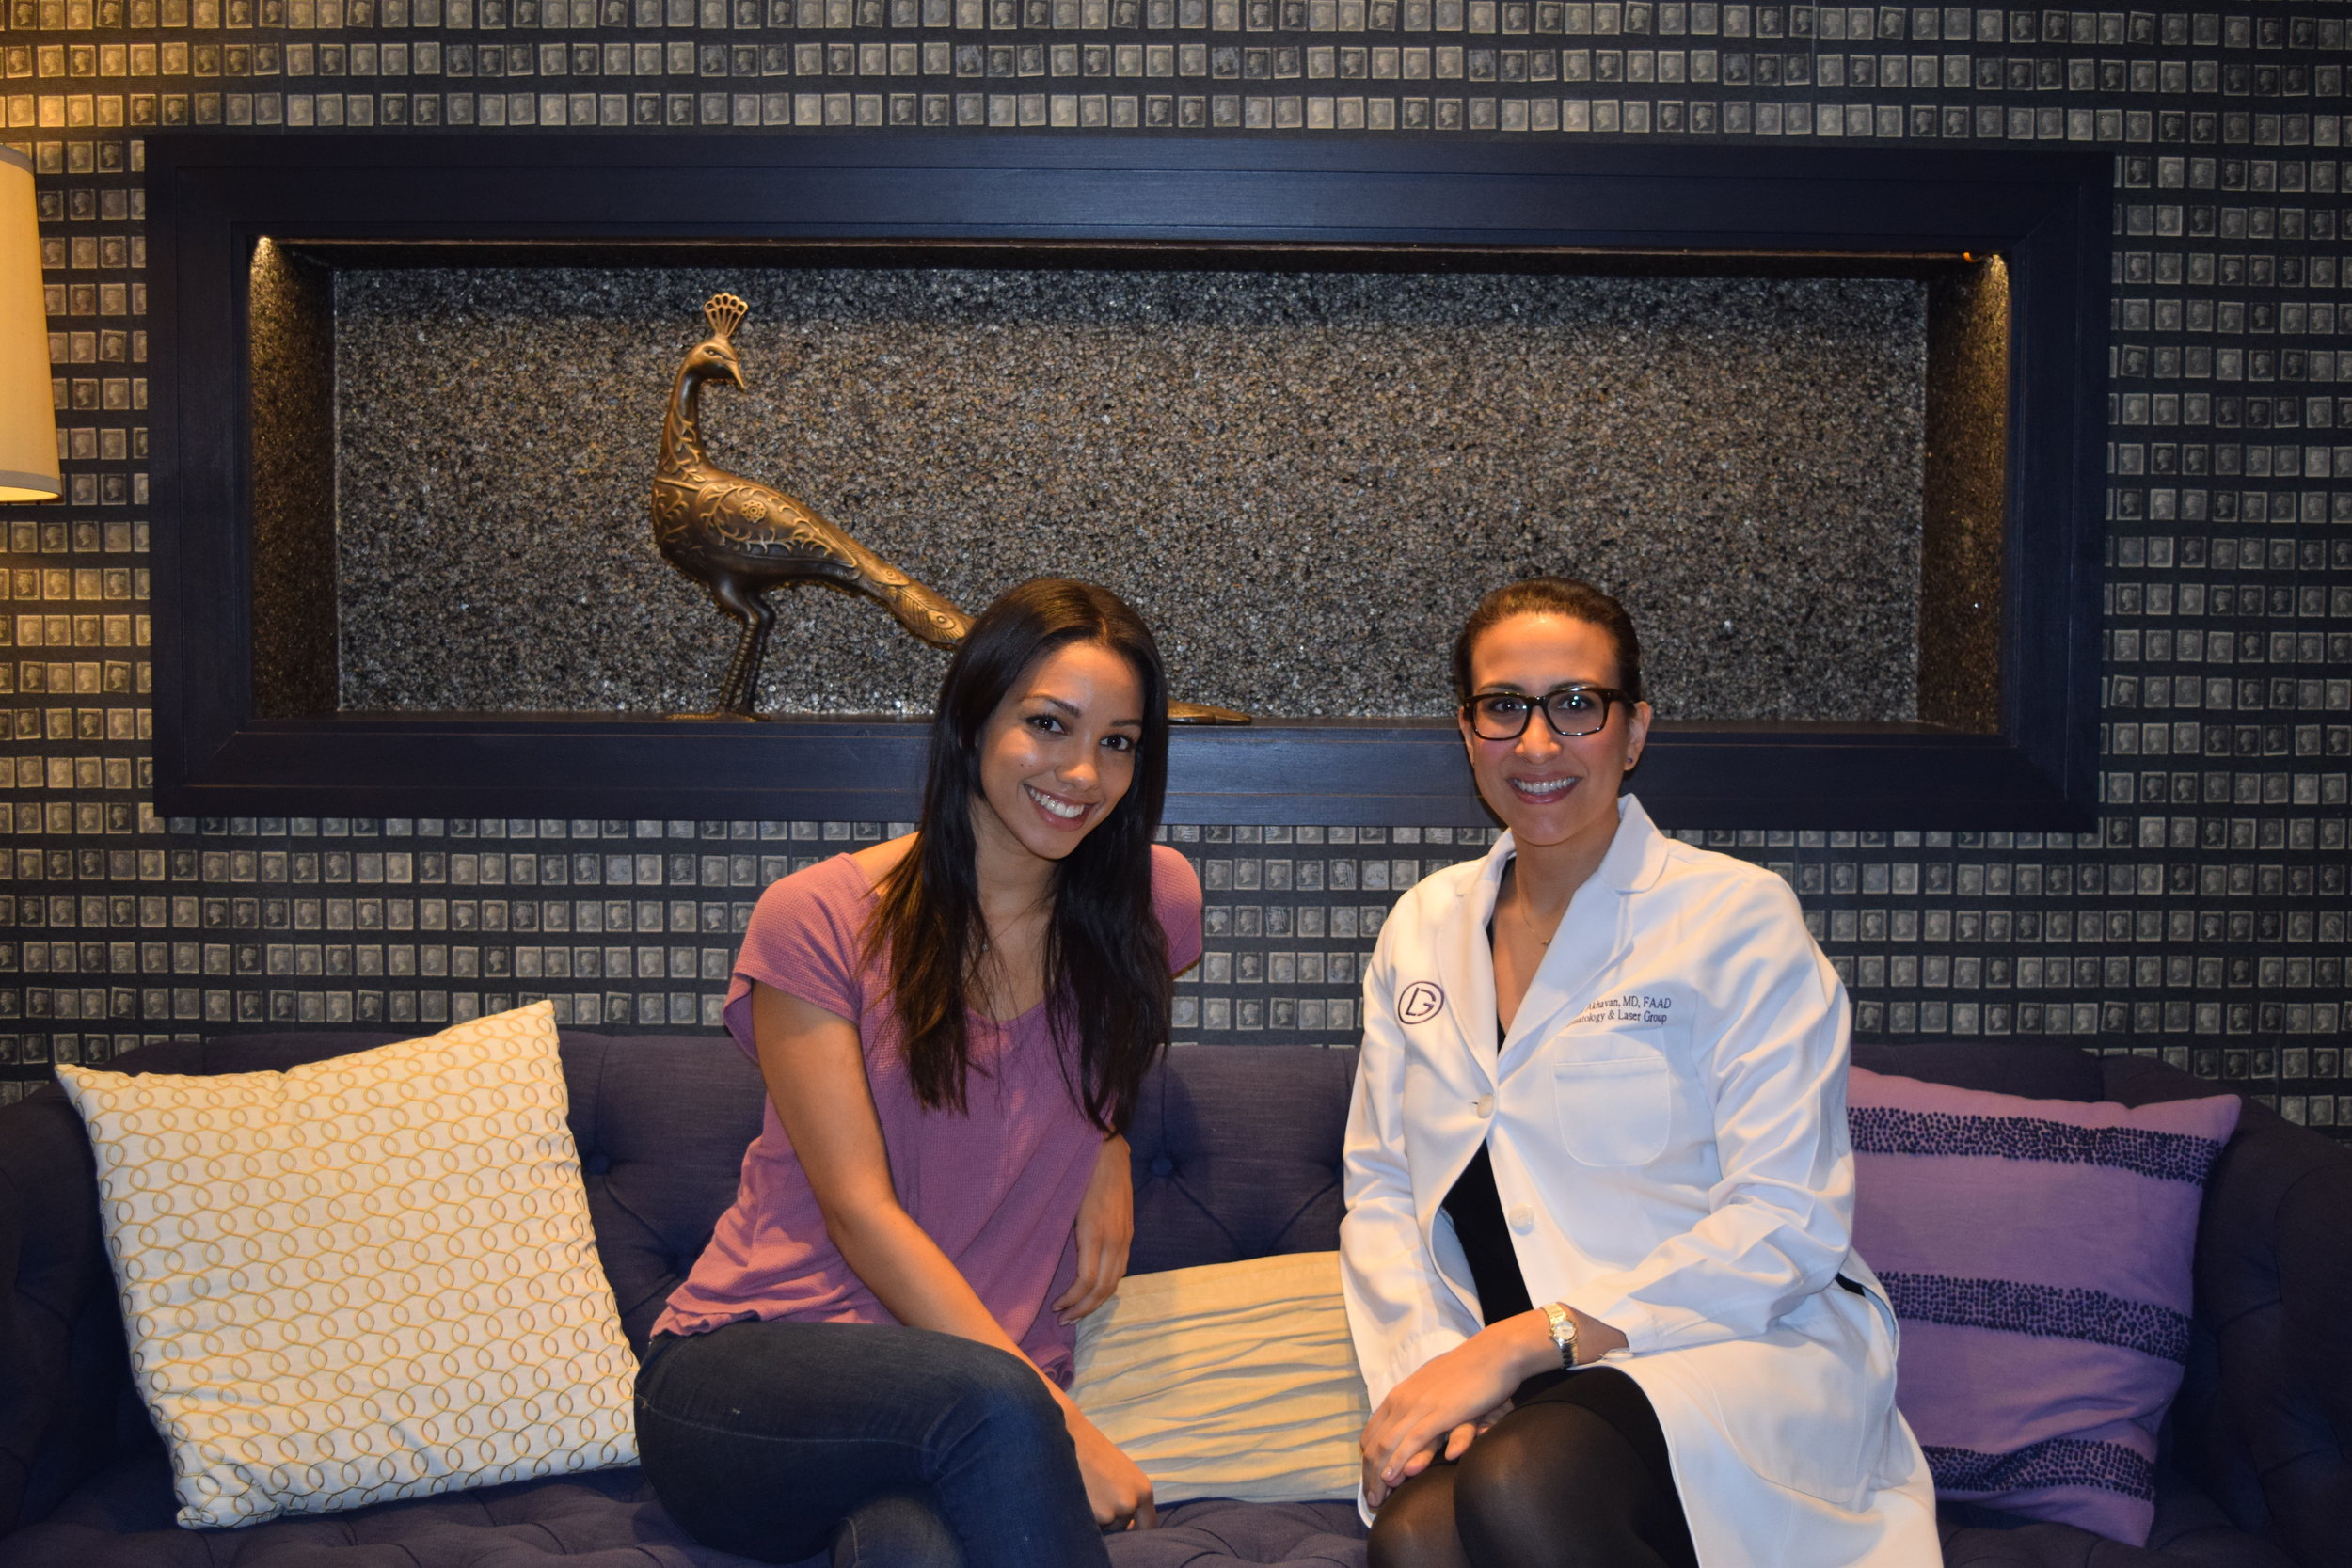 Founder, Corinne Foxx, and Dr. Alaleh Akhavan sit down for a chat about skin care.